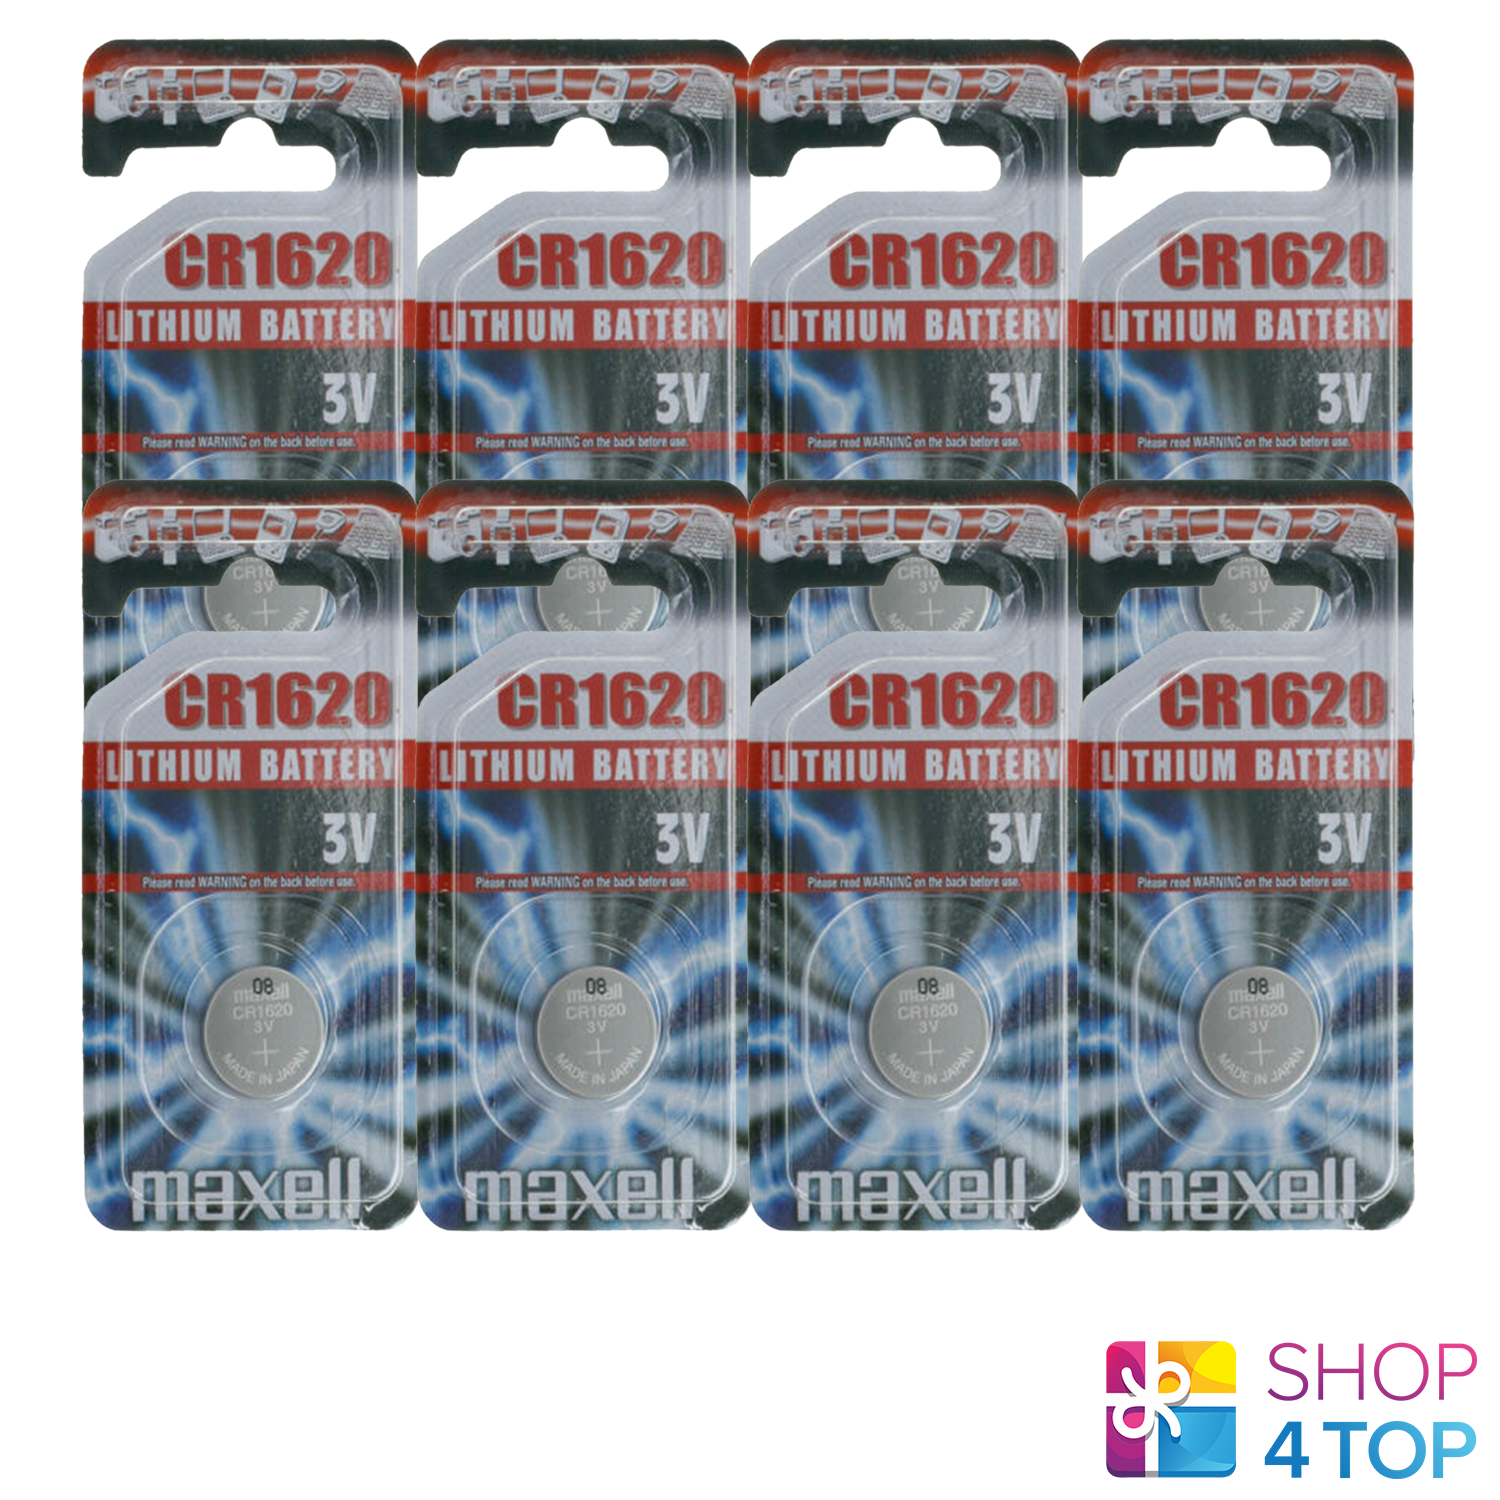 8 maxell cr1620 lithium button cell batteries 3v dl other 1620 exp 2022 new